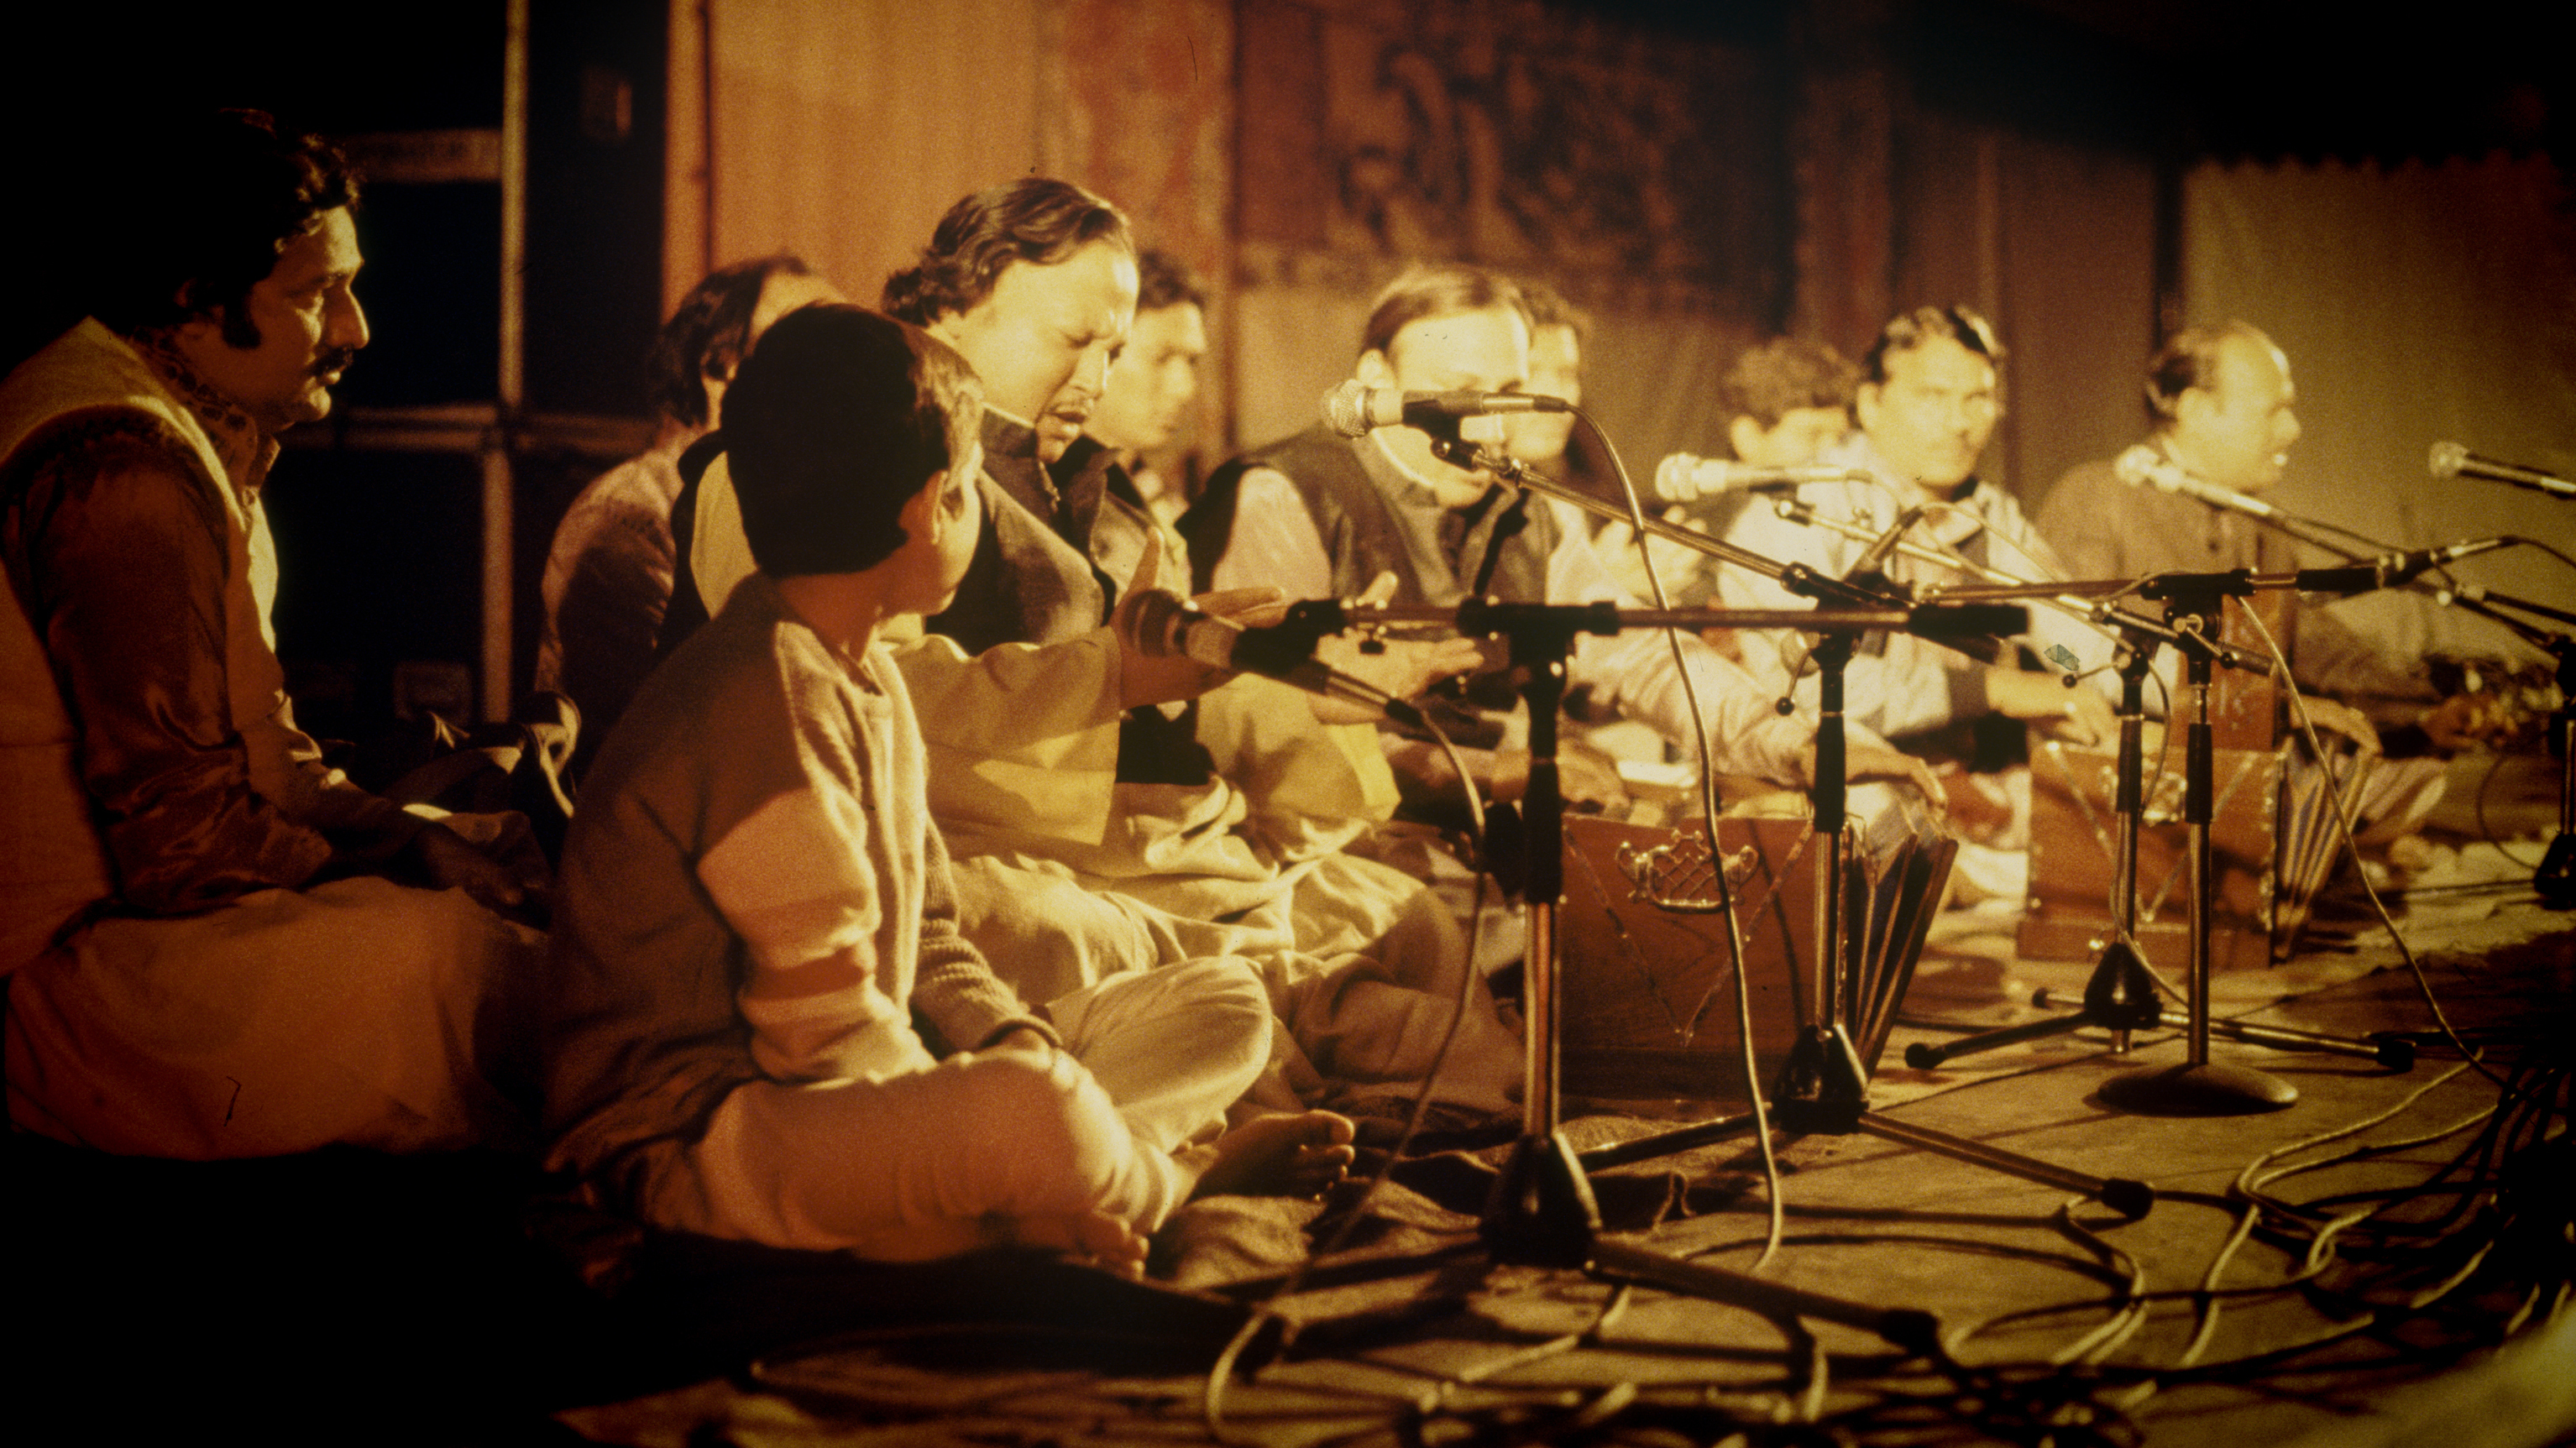 Nusrat Fateh Ali Khan's Voice Offers A Sonic Refuge